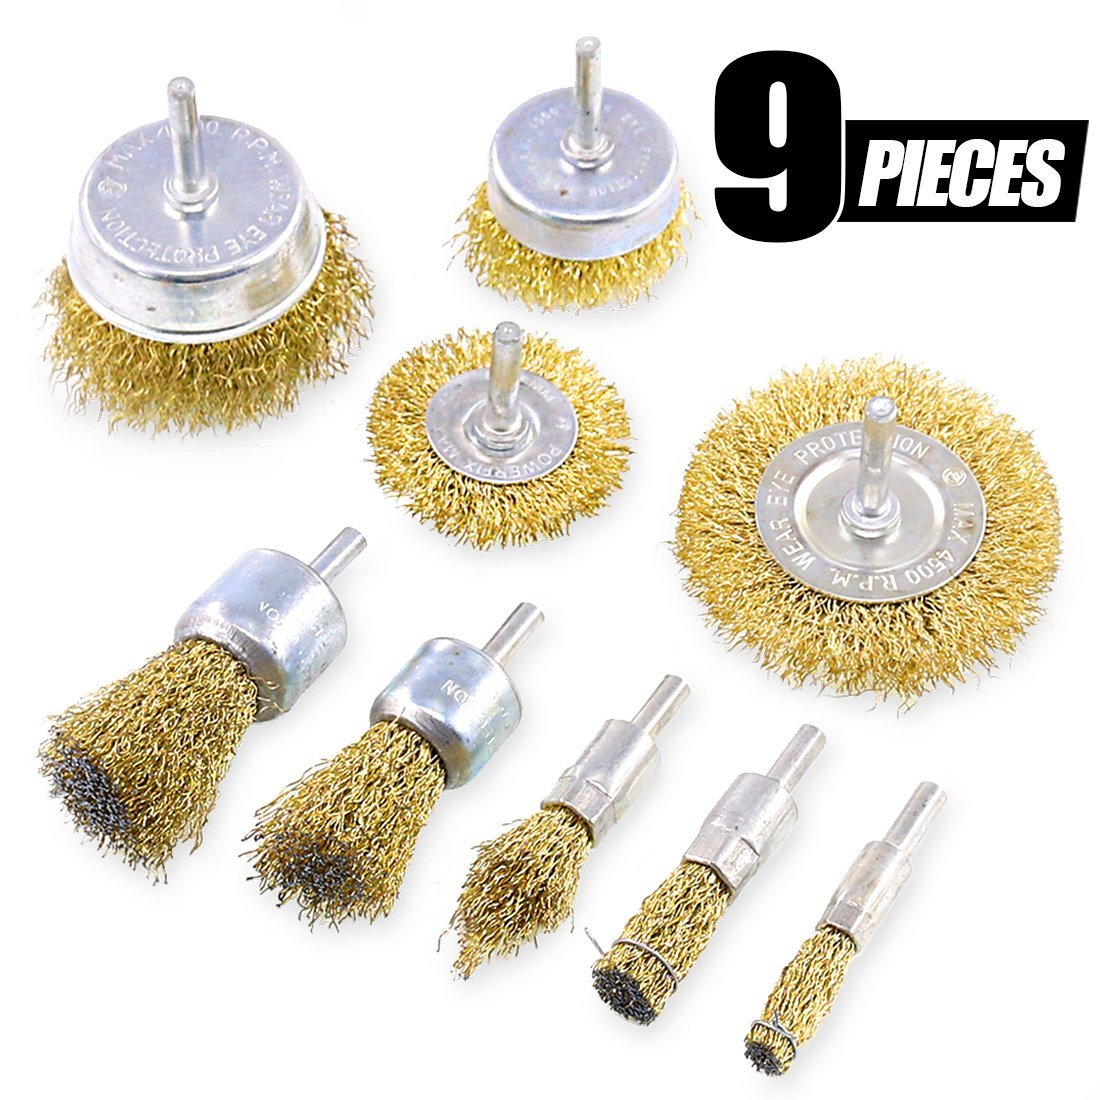 Swpeet 9Pcs Brass Coated Wire Brush Wheel & Cup Brush Set with 1/4-Inch Shank, 9 Sizes Coated Wire Drill Brush Set Perfect For Removal of Rust/Corrosion/Paint - Reduced Wire Breakage and Longer Life by Swpeet